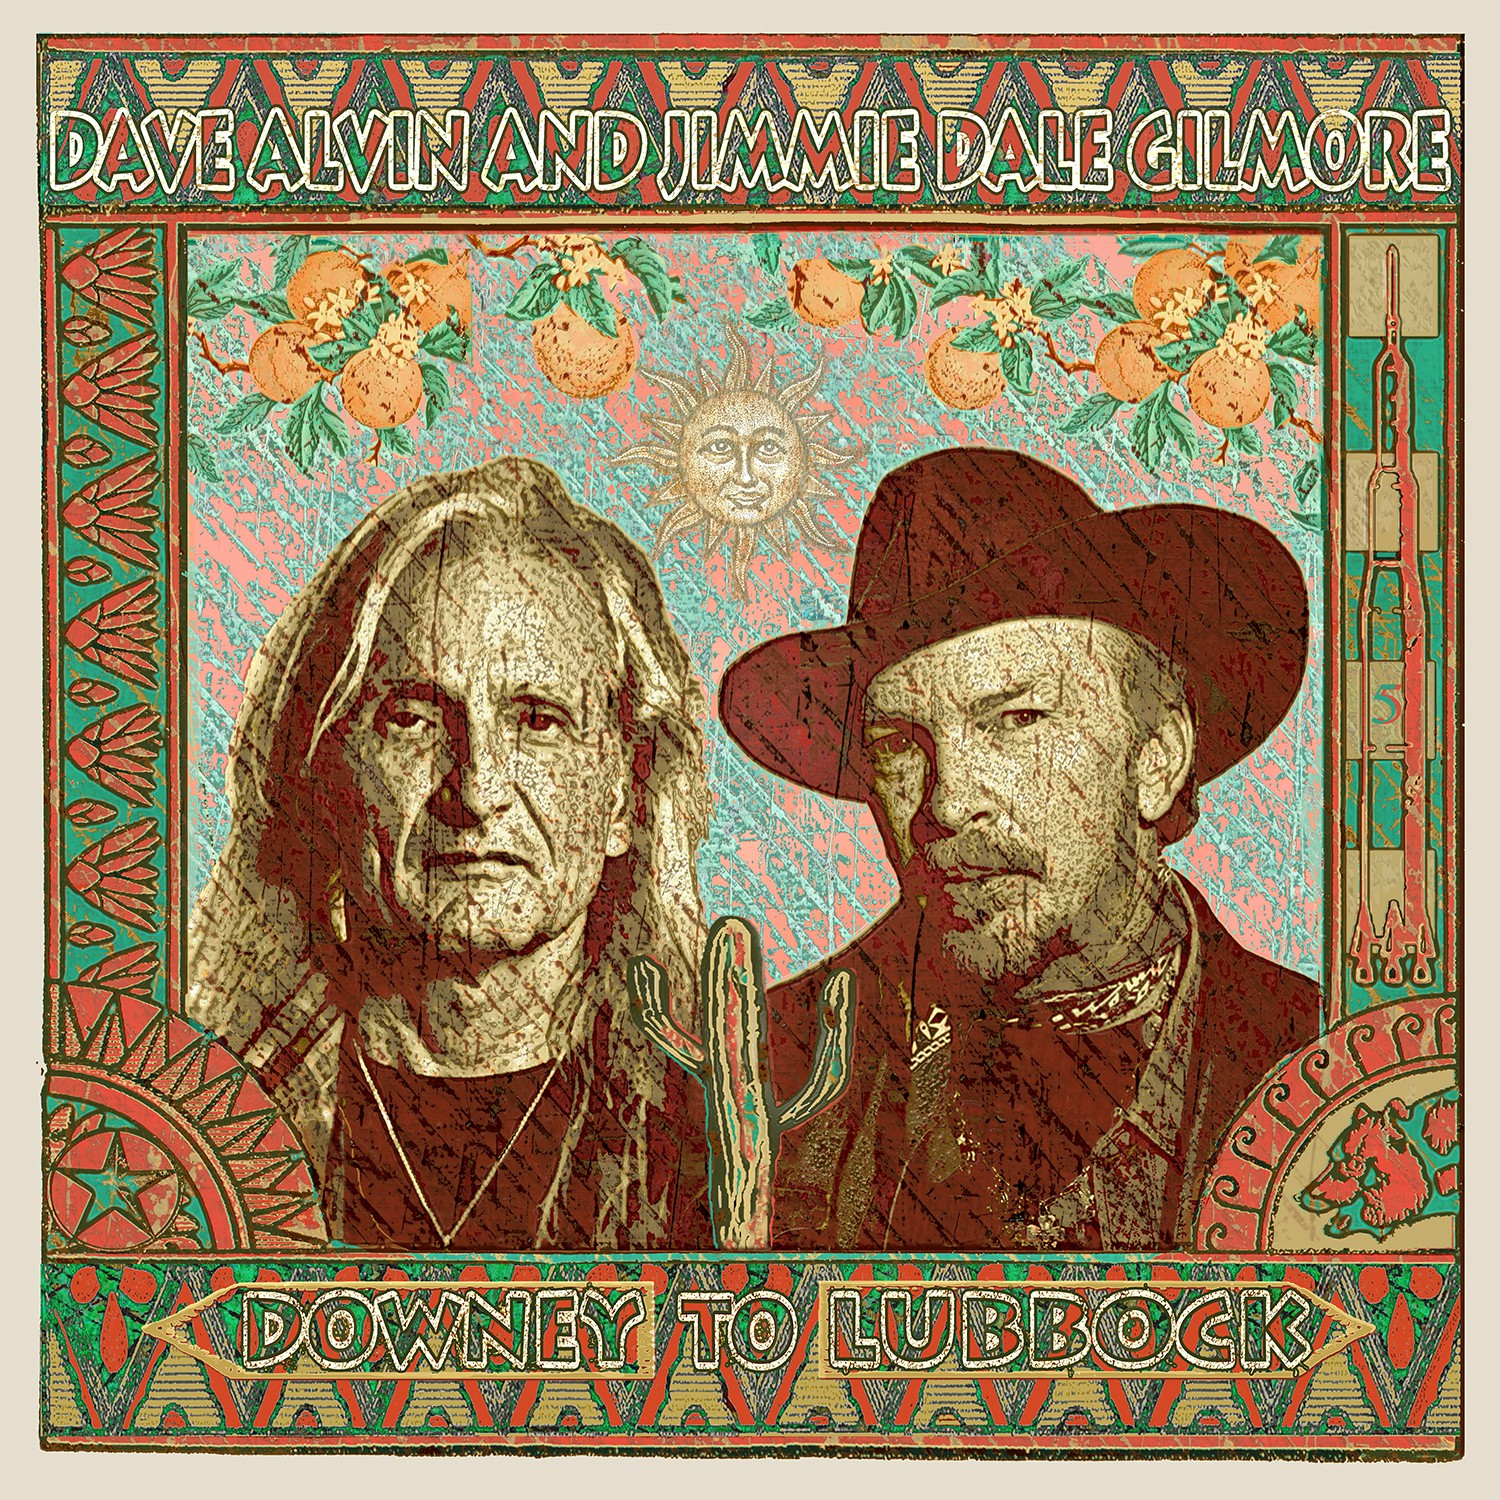 Dave Alvin and Jimmie Dale Gilmore - 'Downey to Lubbock'